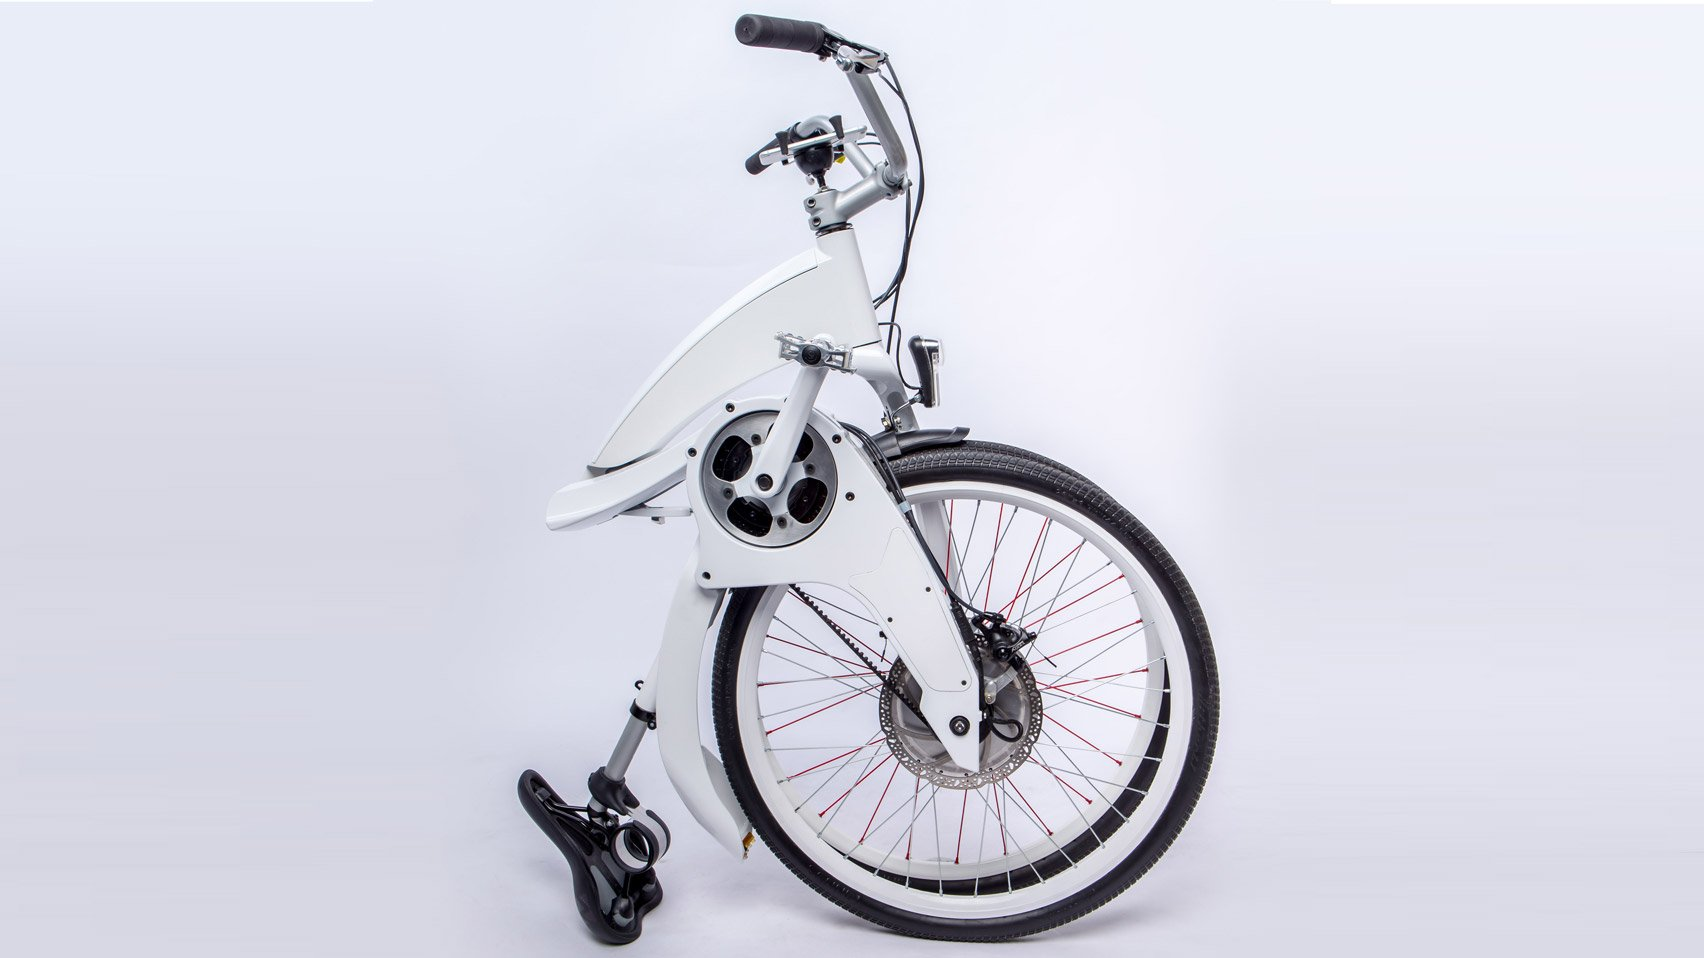 80b7098947b Electric bicycle Gi FlyBike can be folded up in a second